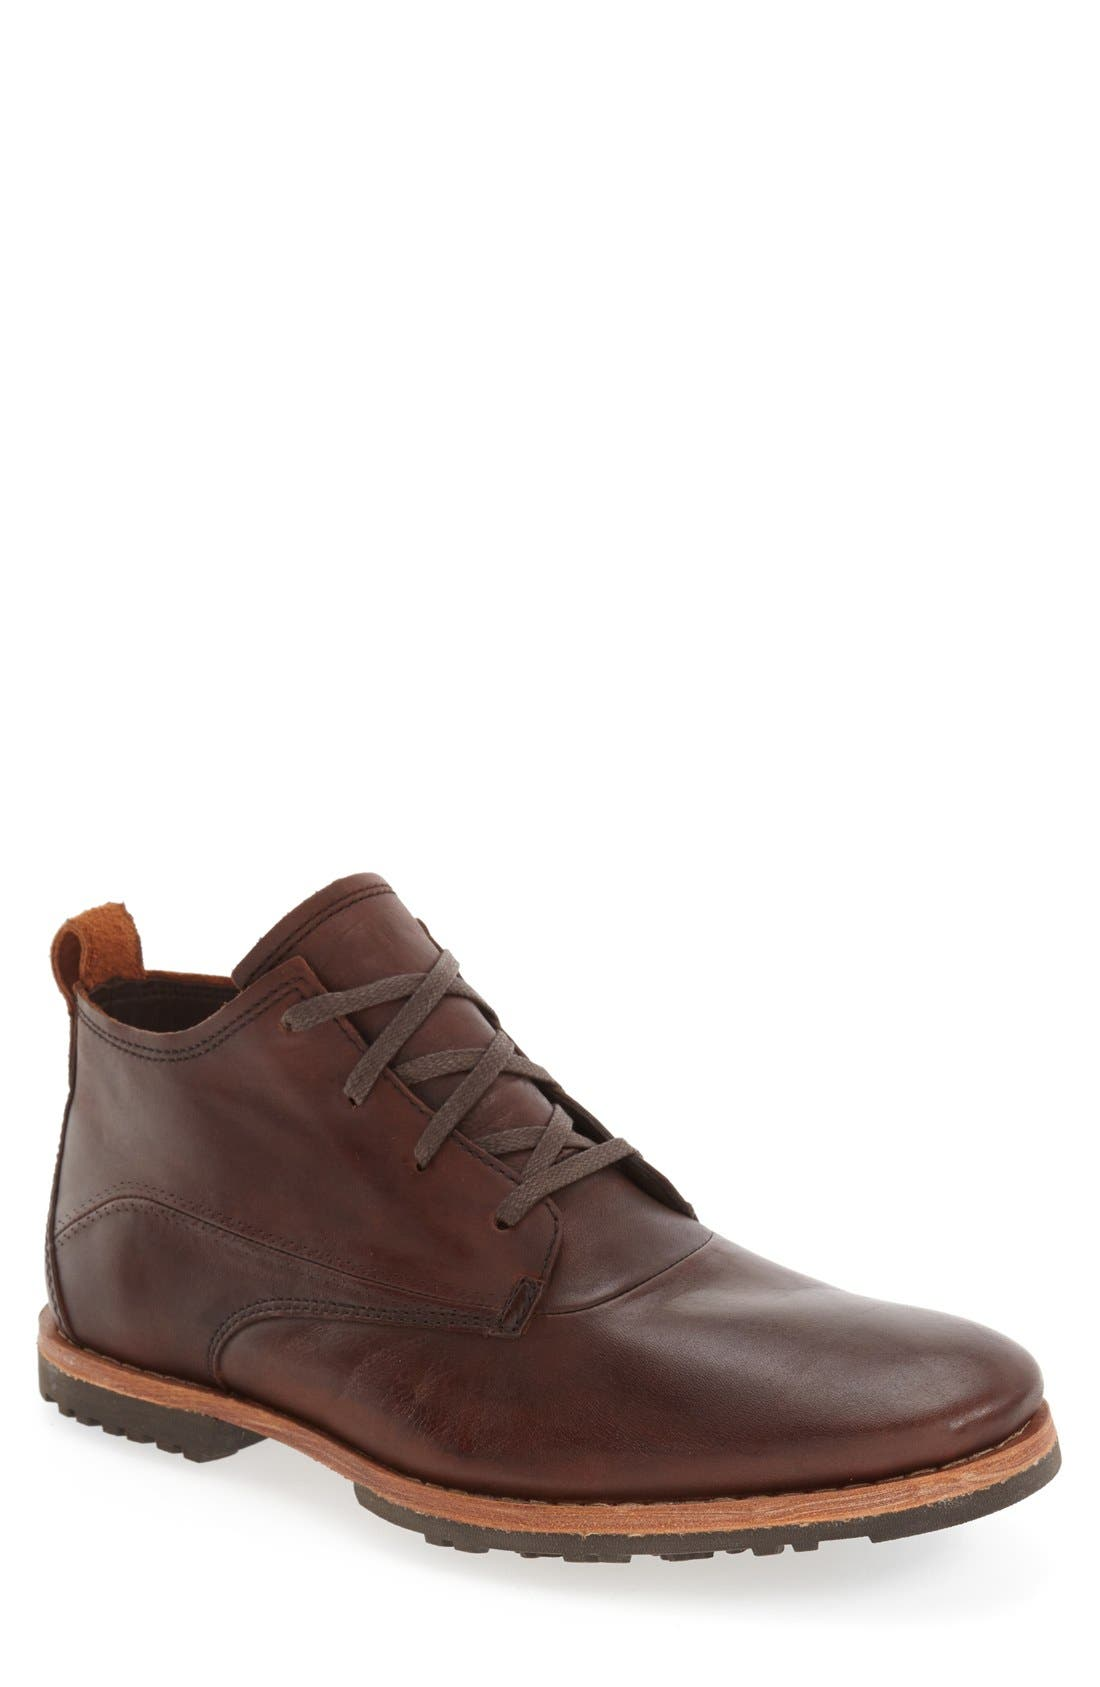 'Bardstown' Chukka Boot,                         Main,                         color, Puce